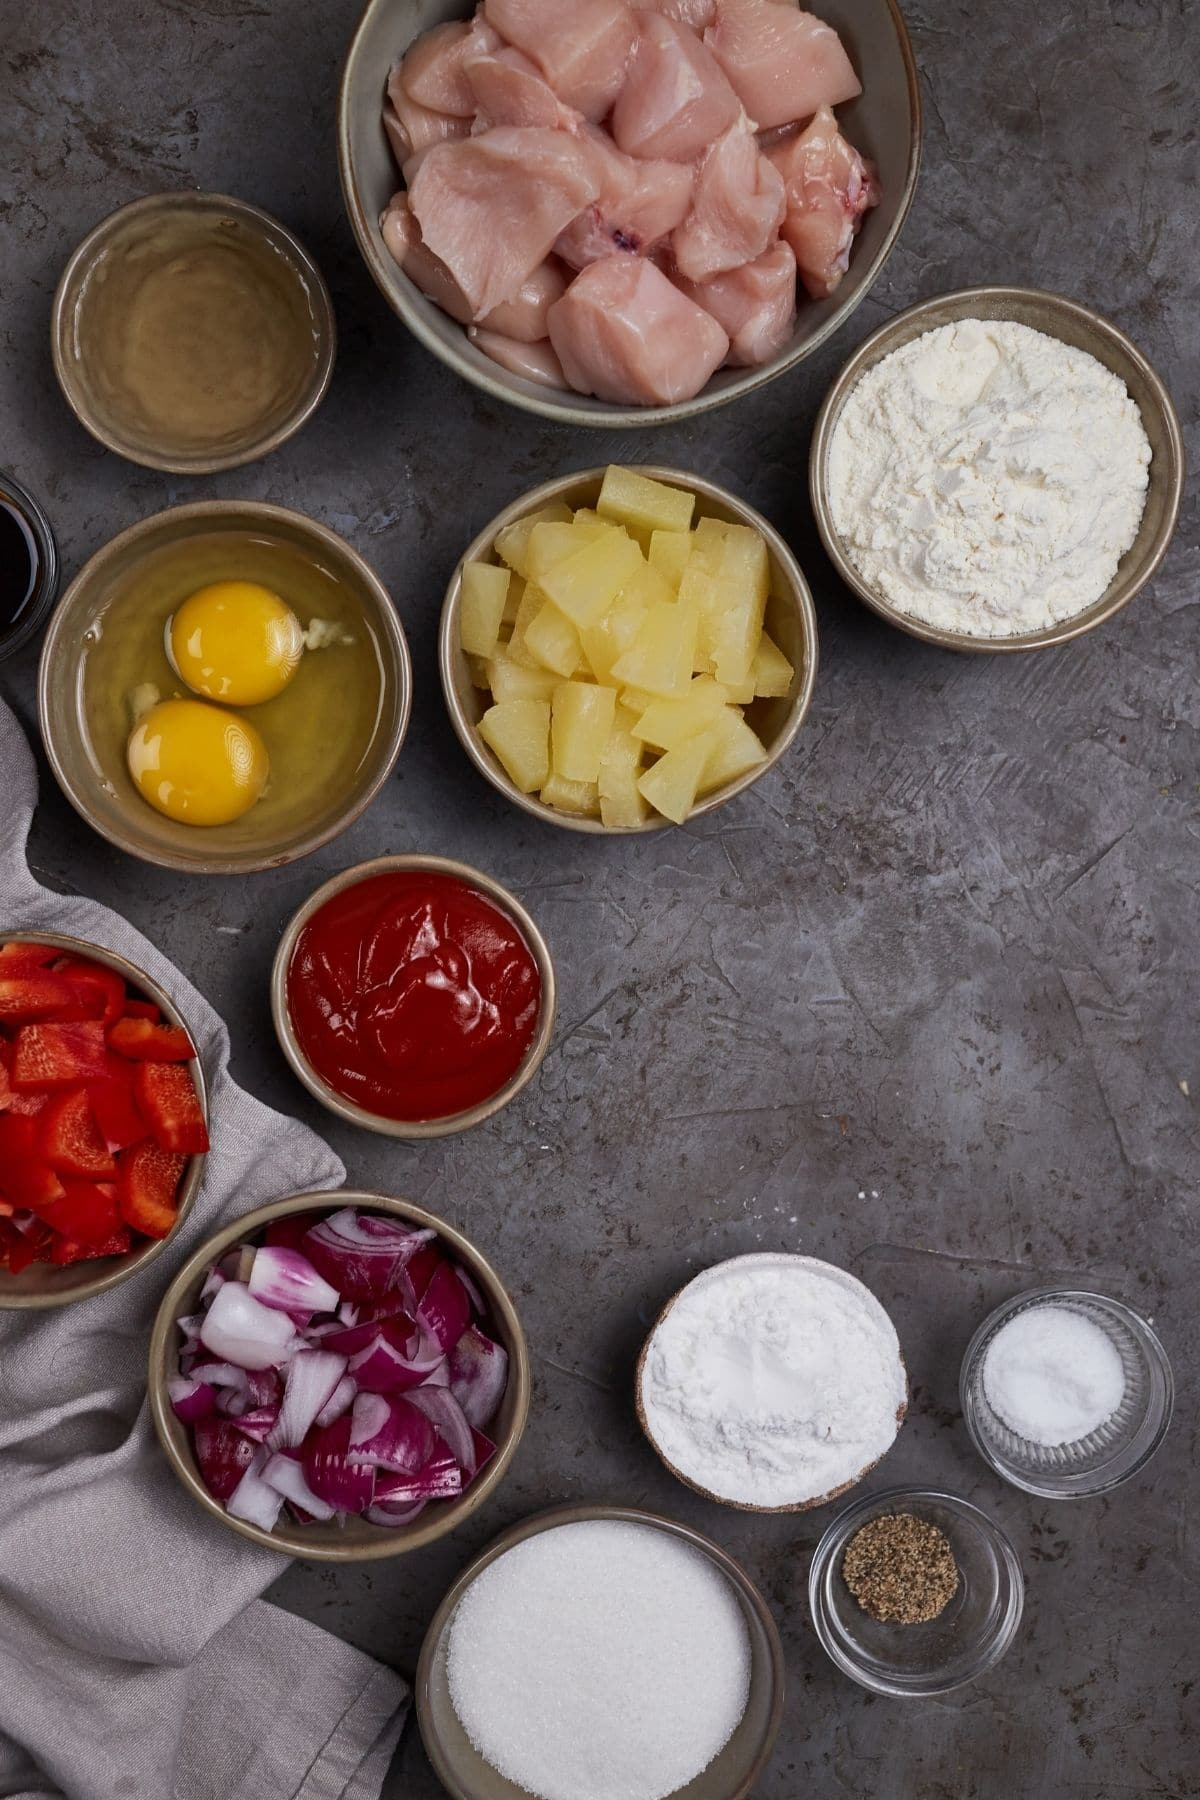 Ingredients for sweet and sour chicken